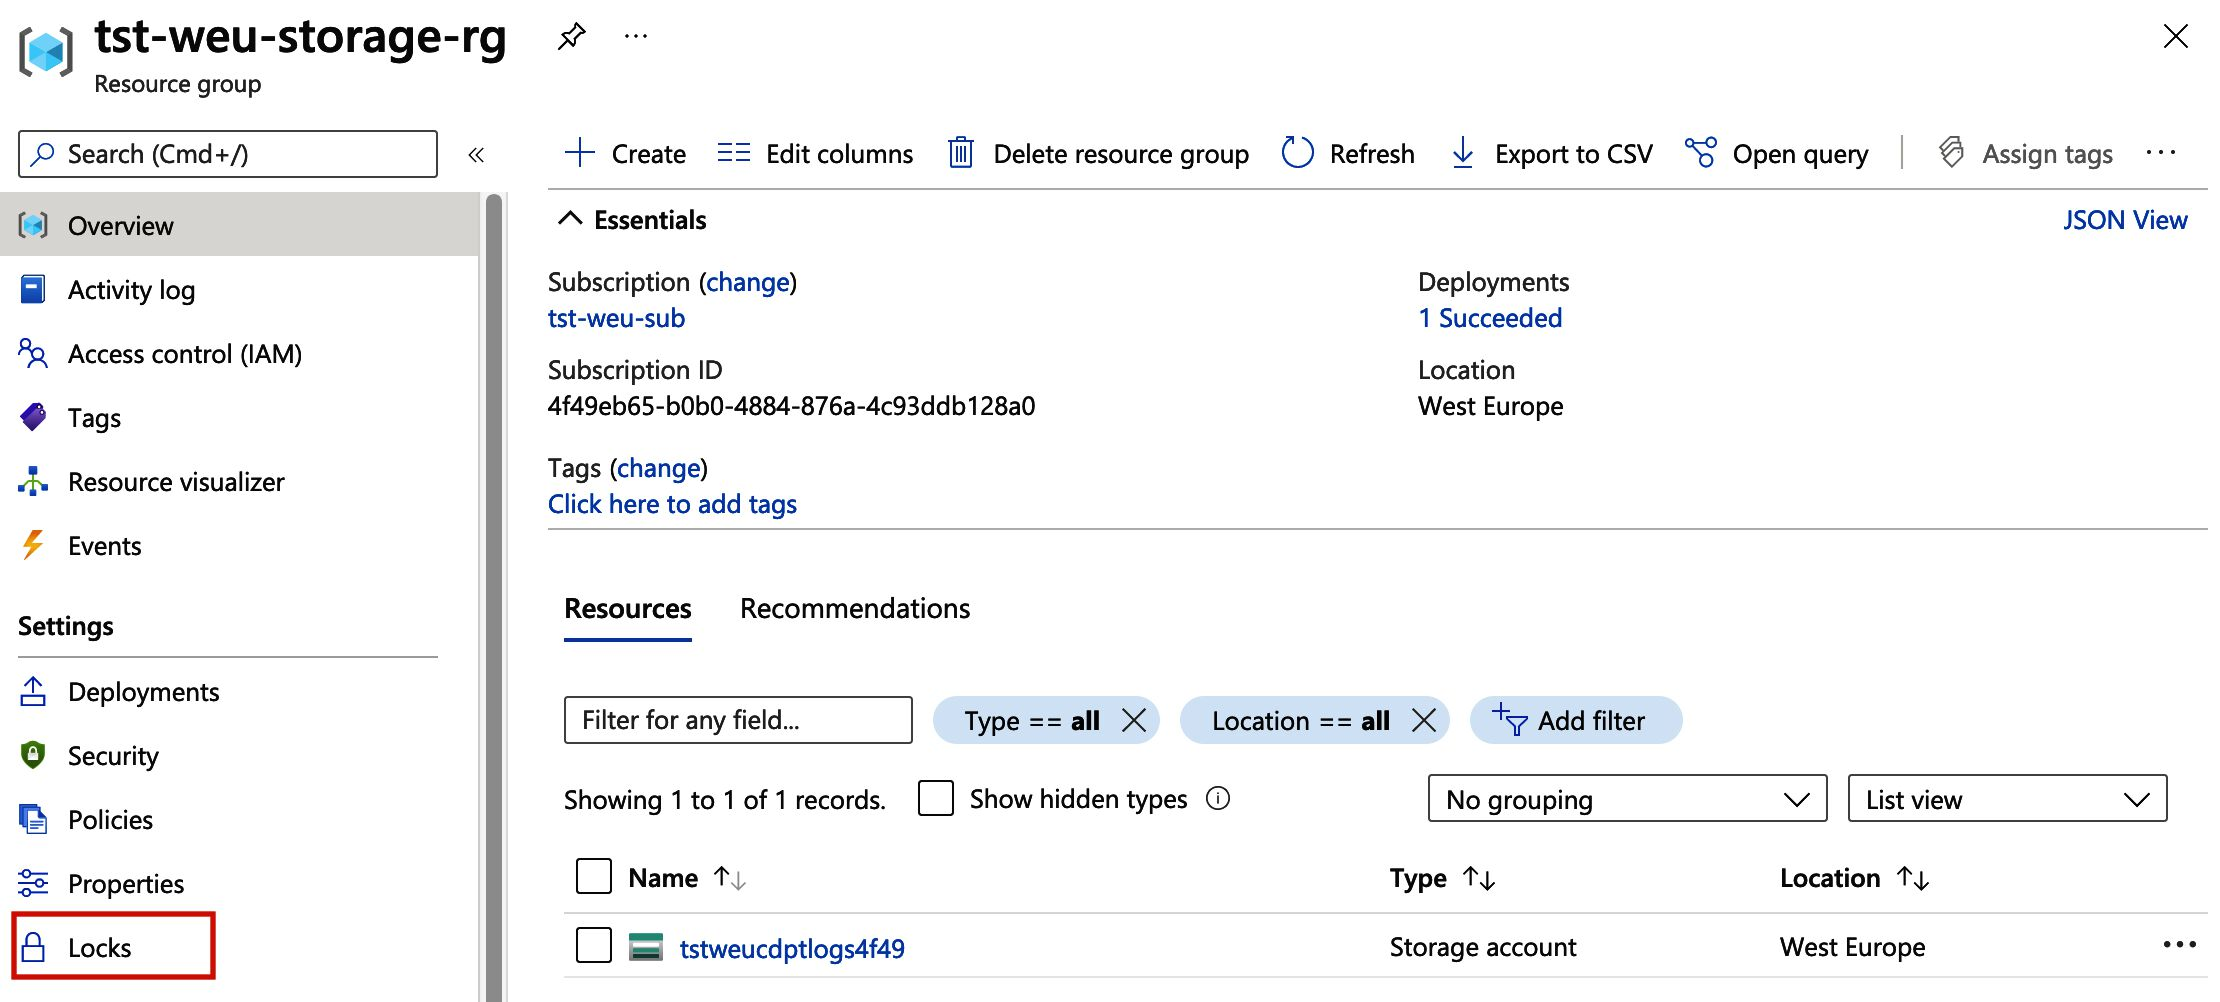 Image of the resource group view in the Azure Portal, the locks setting is highlighted.